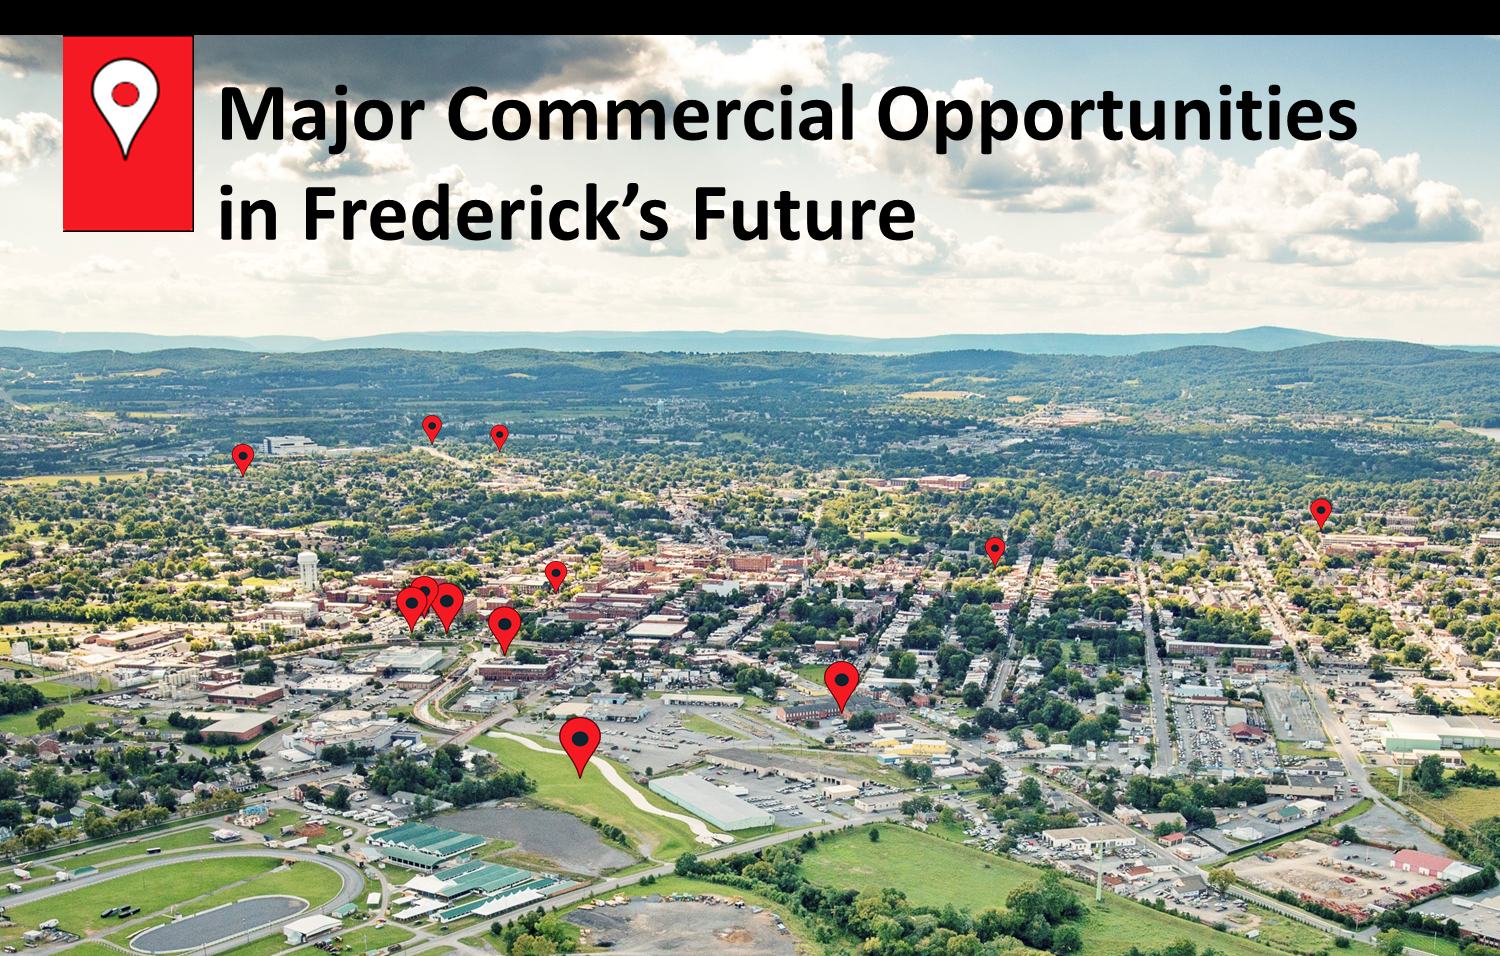 Major Commercial Opportunities